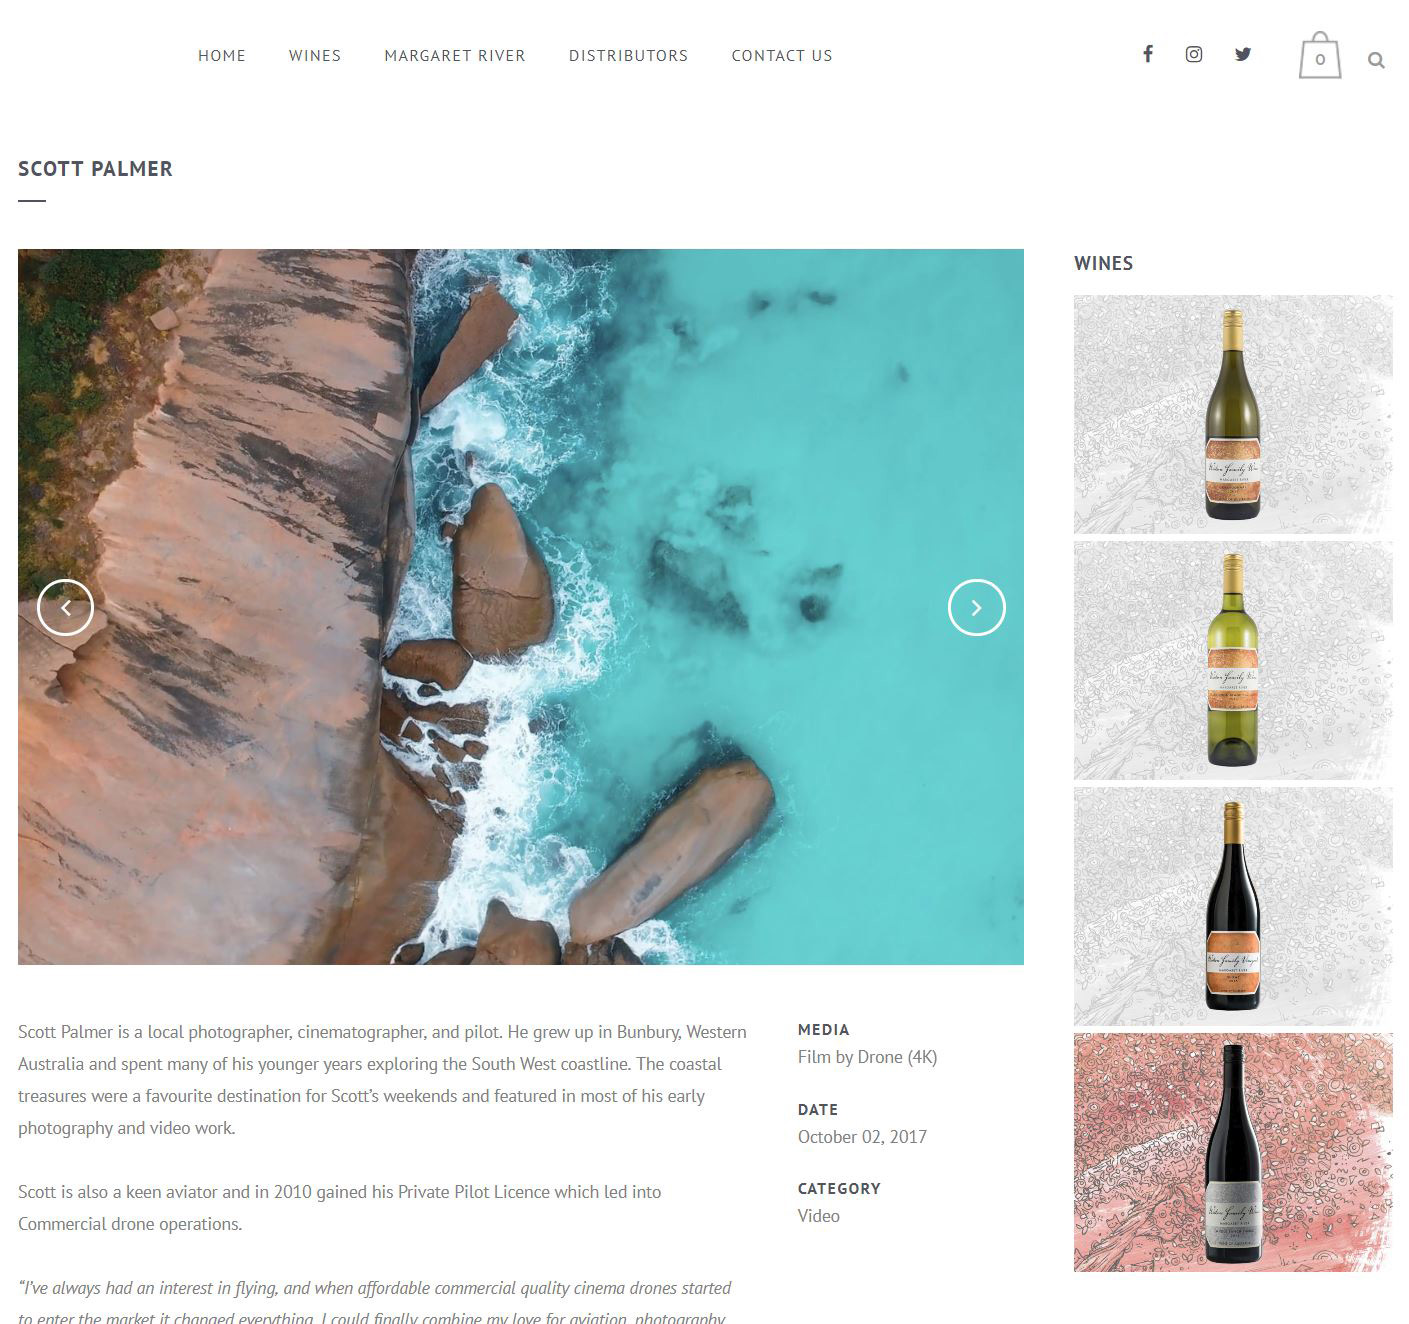 https://cdn.droneimage.com.au/wp-content/uploads/2019/07/watson-family-wines-features-drone-image-western-australia-drone-photography-tv-cinematograhy-commercial-WA-Perth.jpg?x64530